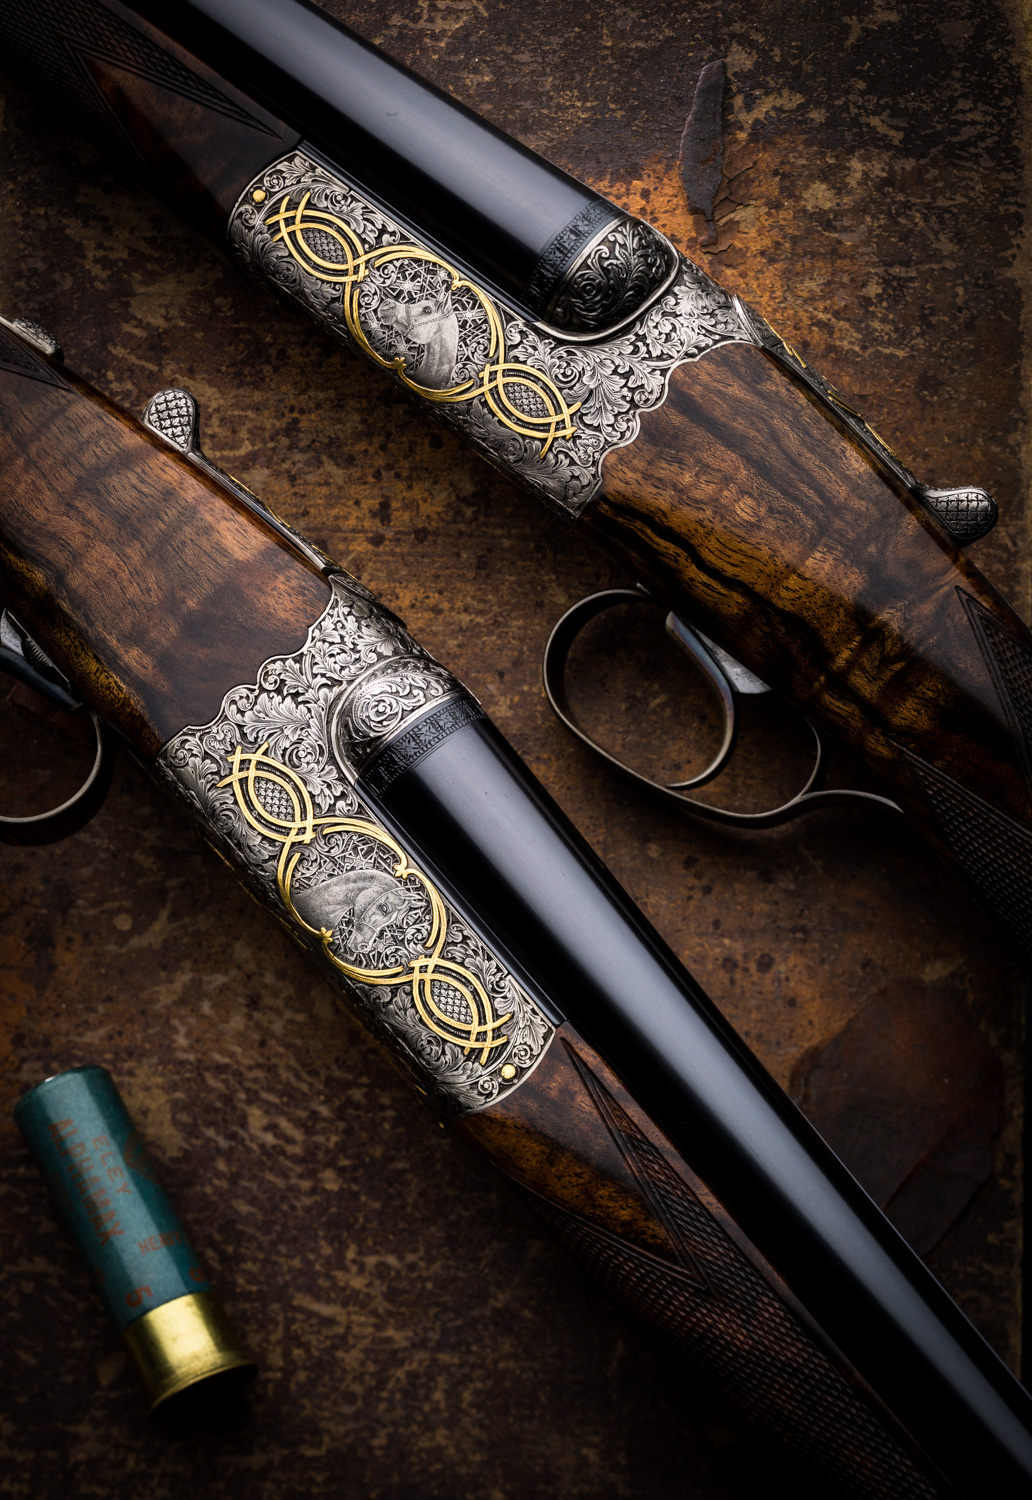 Westley Richards, 16g, Droplock, Lepinois,